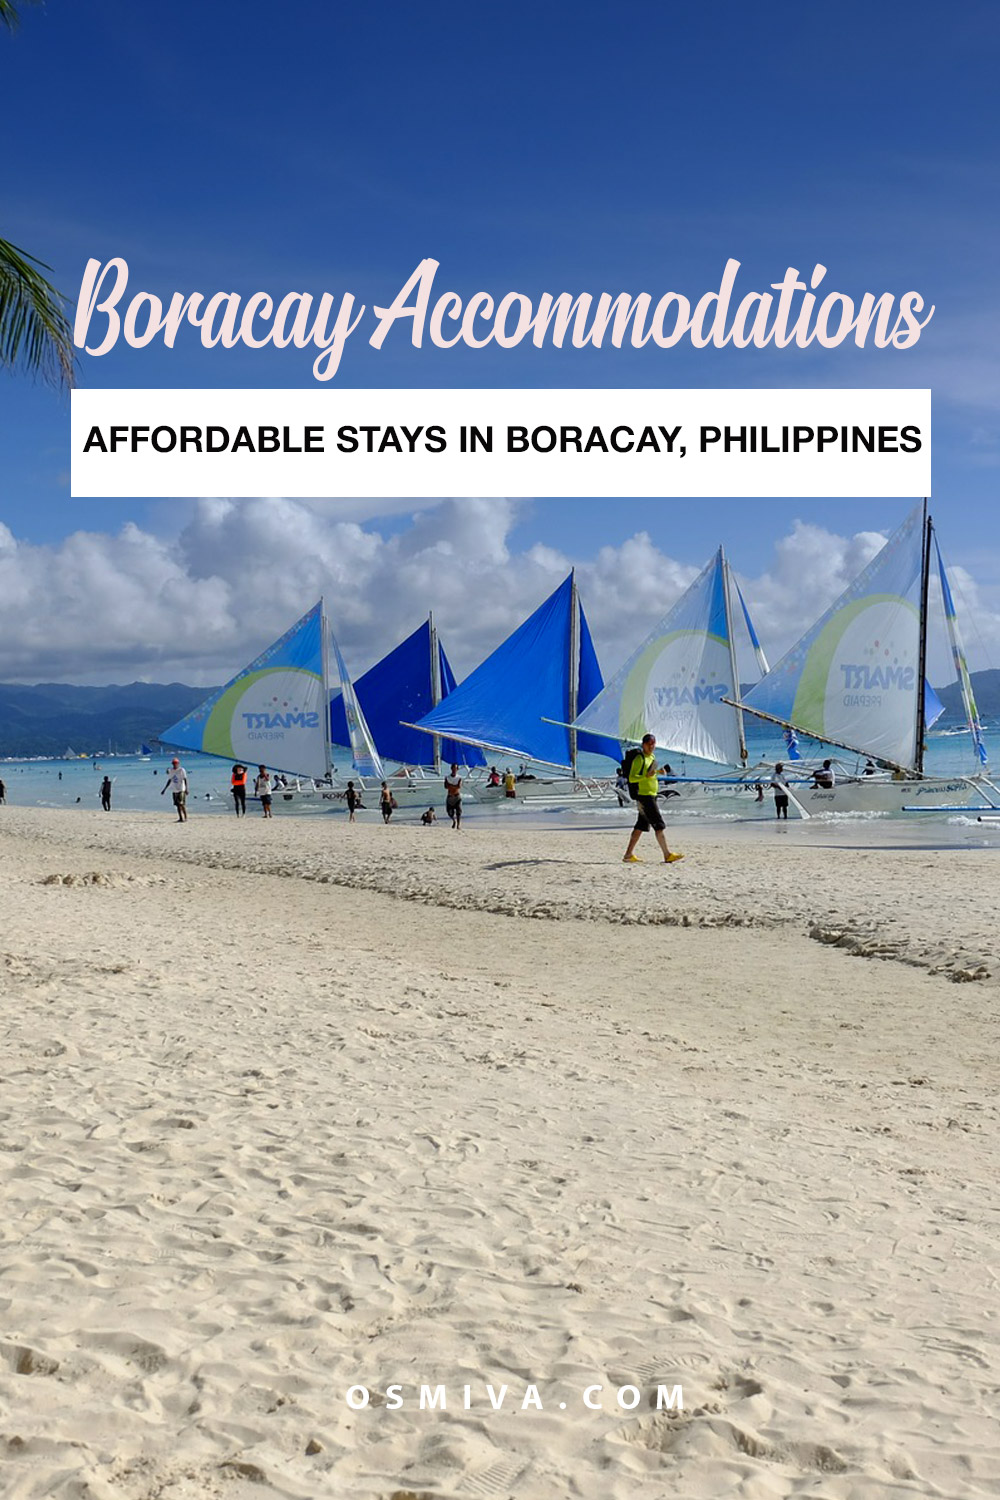 Affordable Accommodations in Boracay